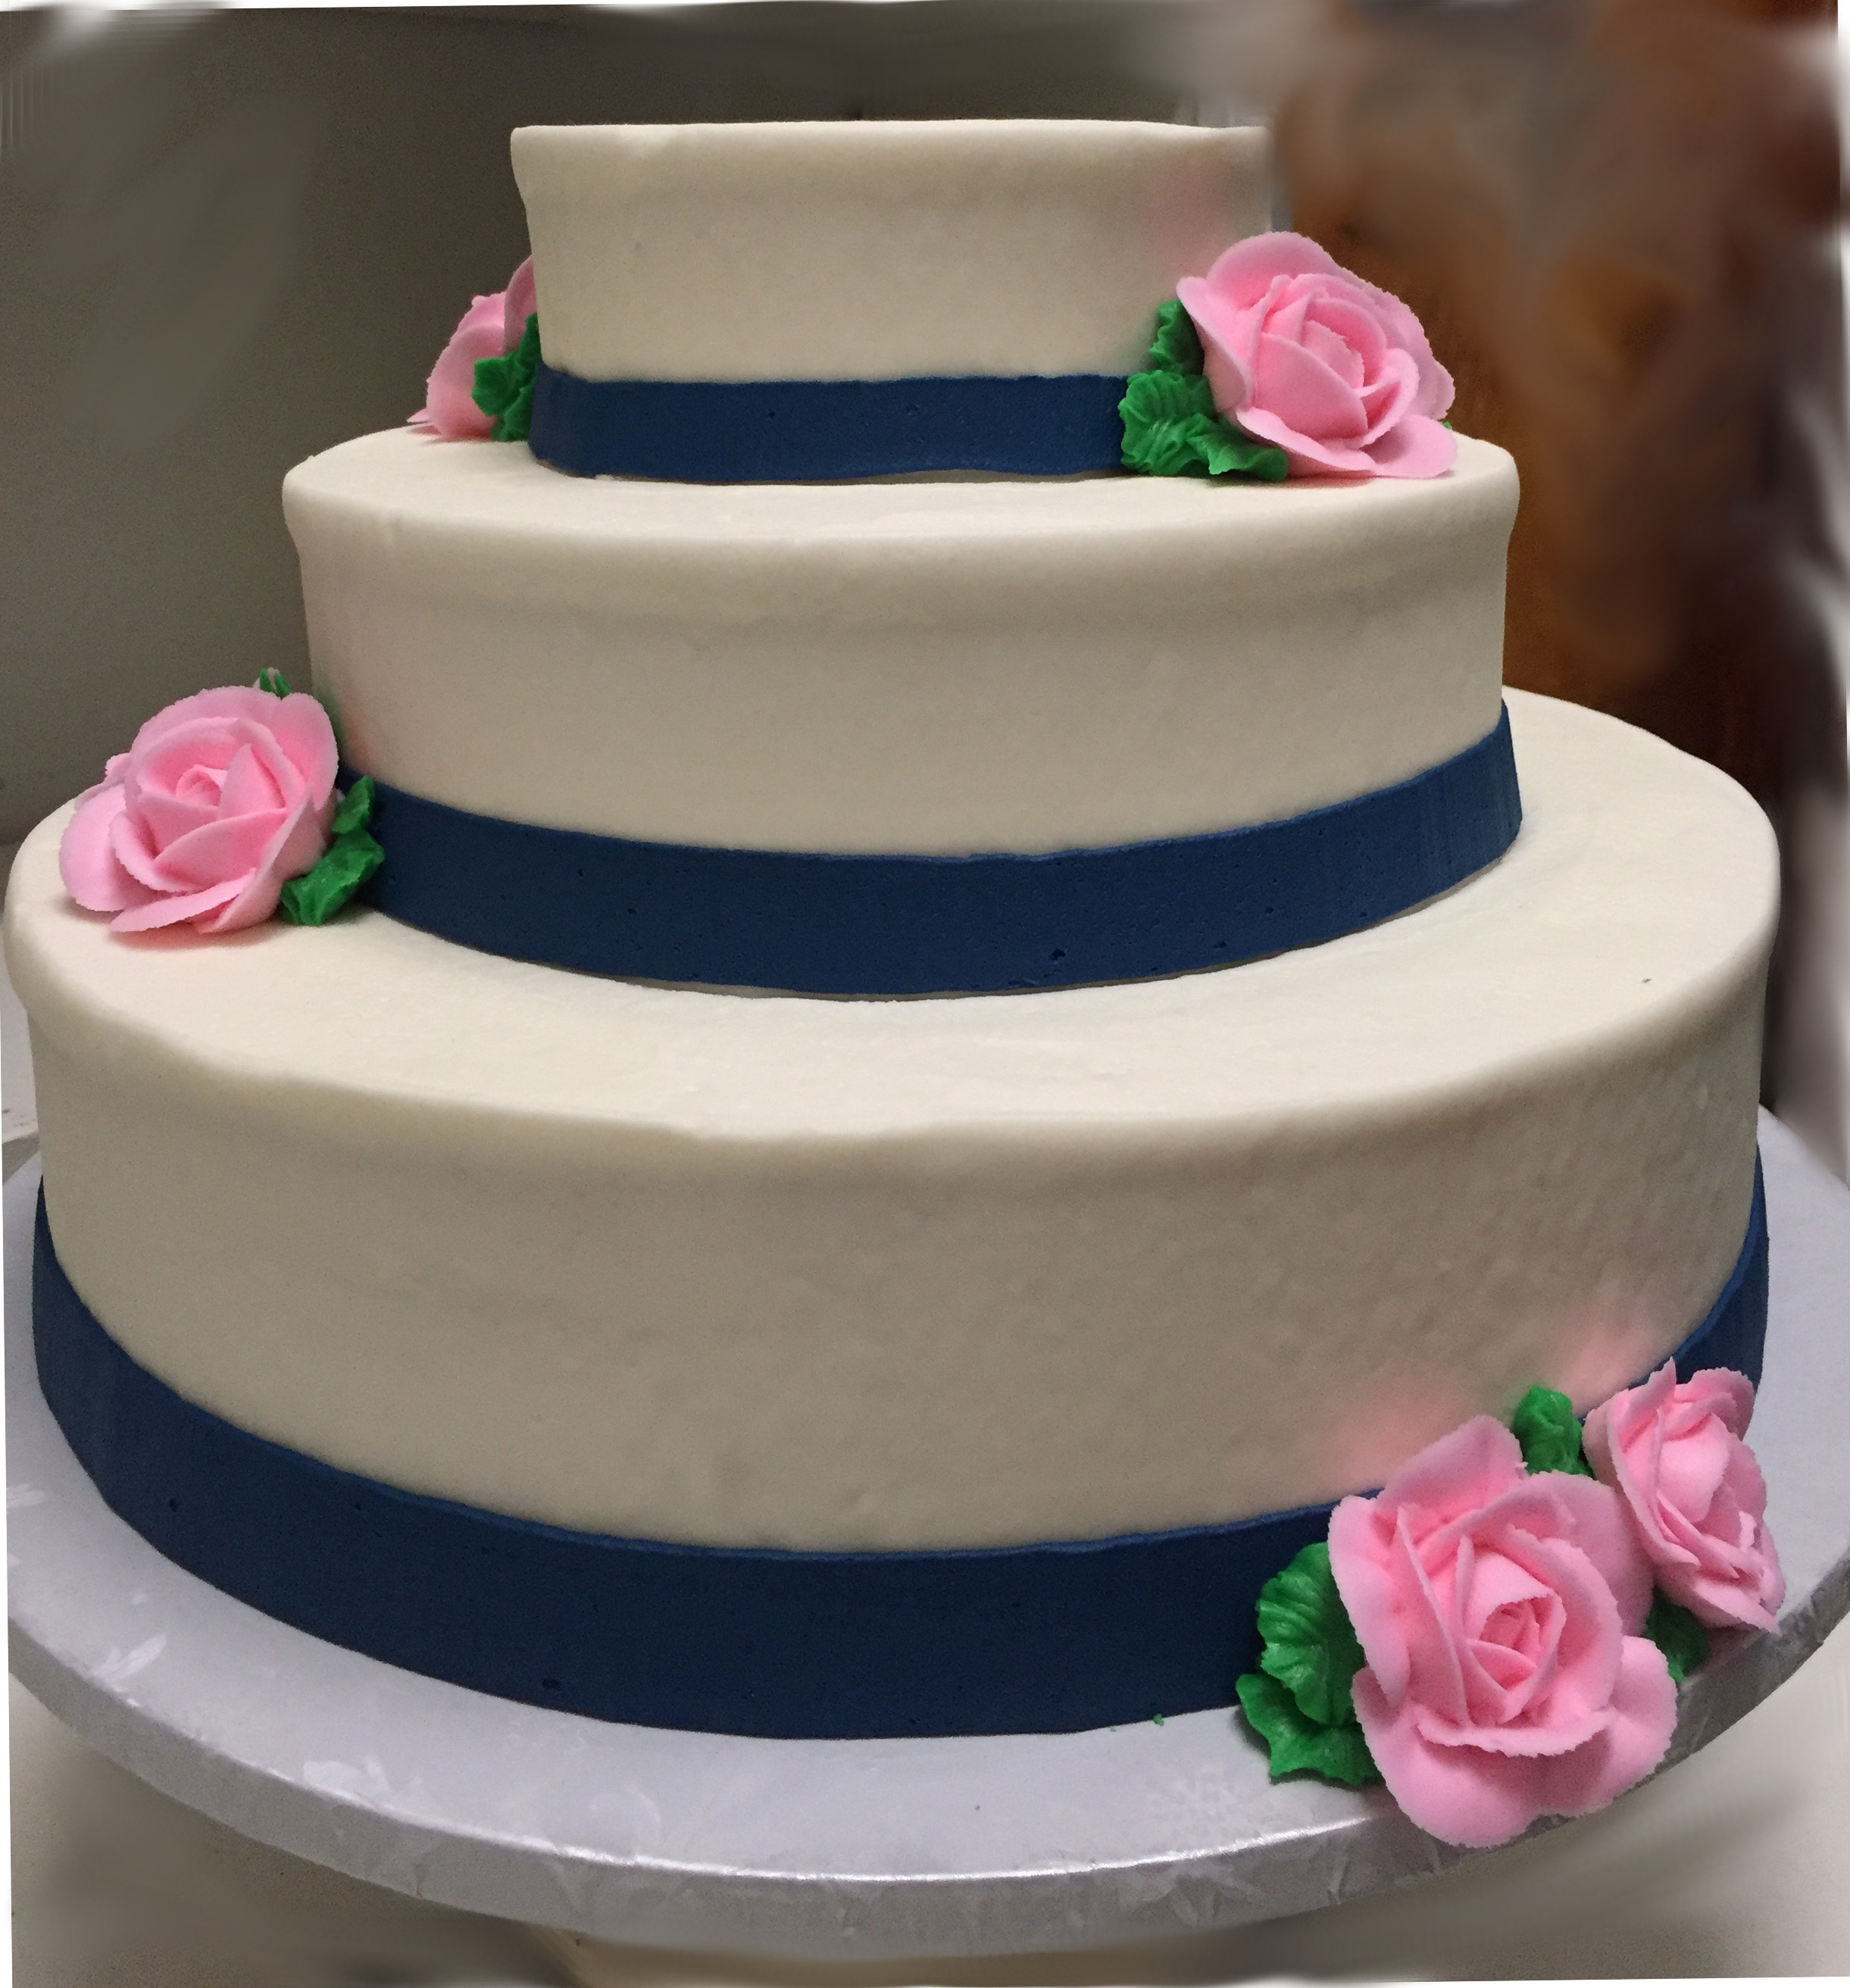 Wedding Cake w/ Navy Blue Ribbon